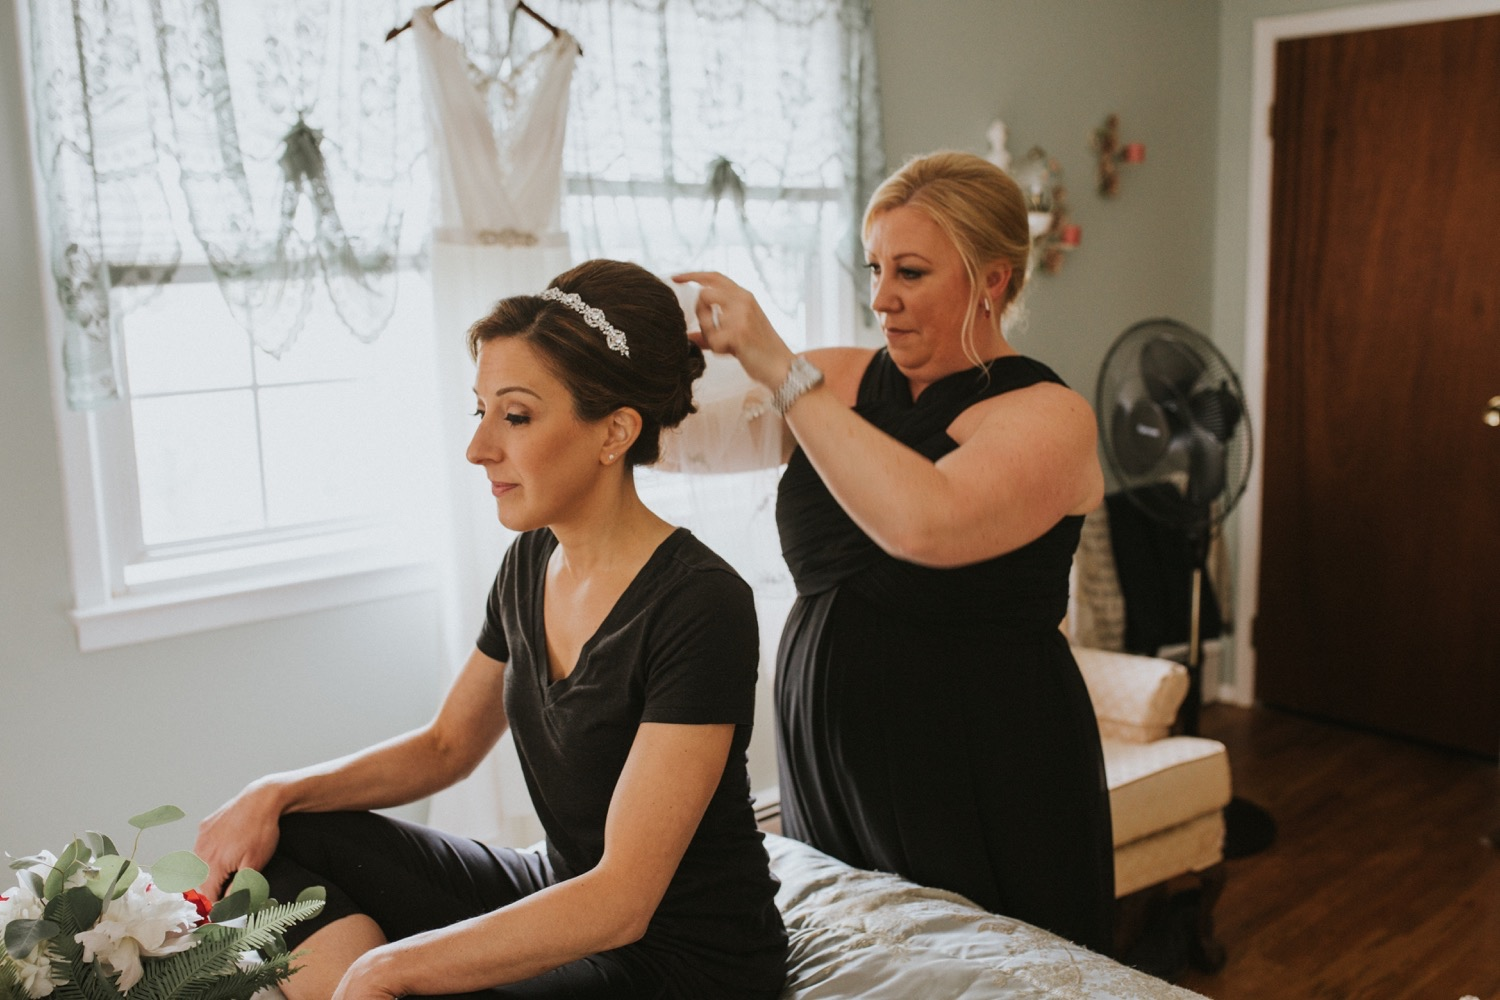 Hudson Valley Wedding Photographer, New York Wedding Photographer, Villa Barone Wedding, Westchester Wedding, Getting Ready Photos